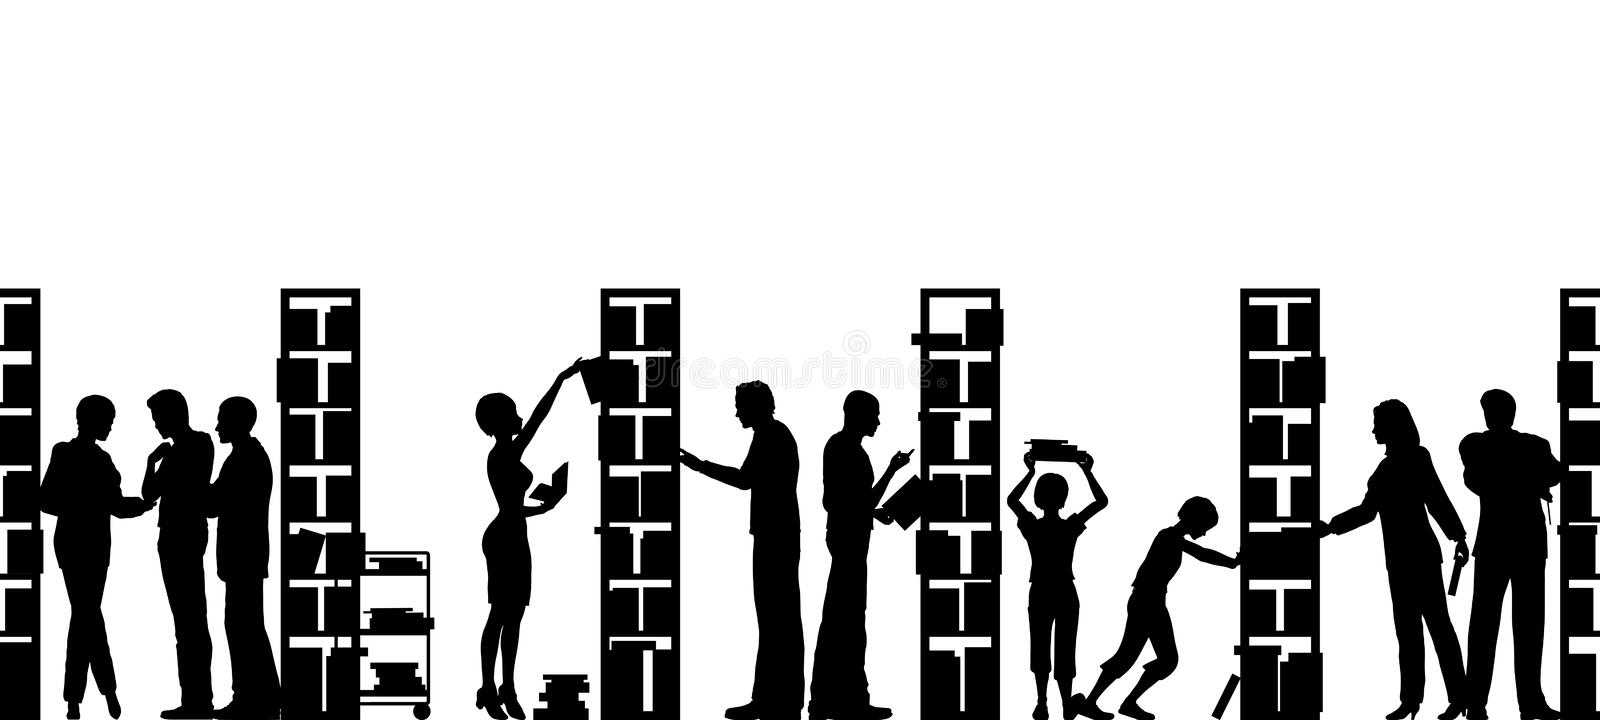 Library. Editable vector silhouette of people in a library with all elements as separate objects